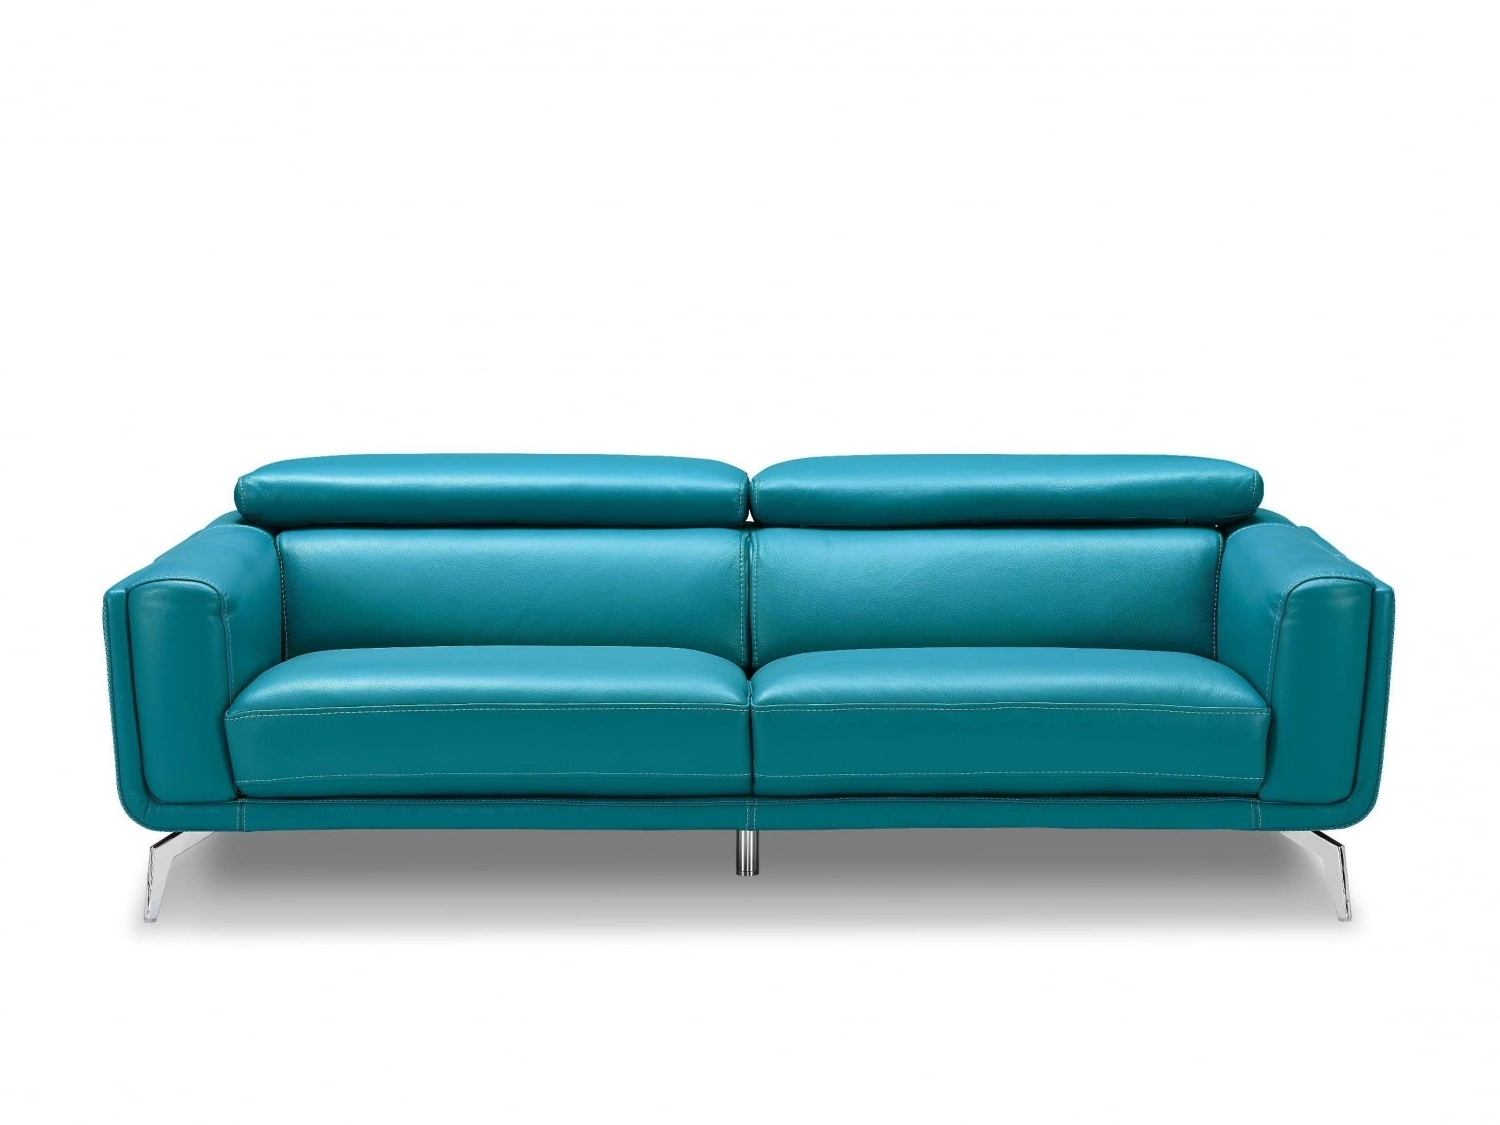 Well Known Sprint Blue Leather Sofa, High Density Foam Sofas, Stainless Steel With Regard To Turquoise Sofas (View 7 of 20)